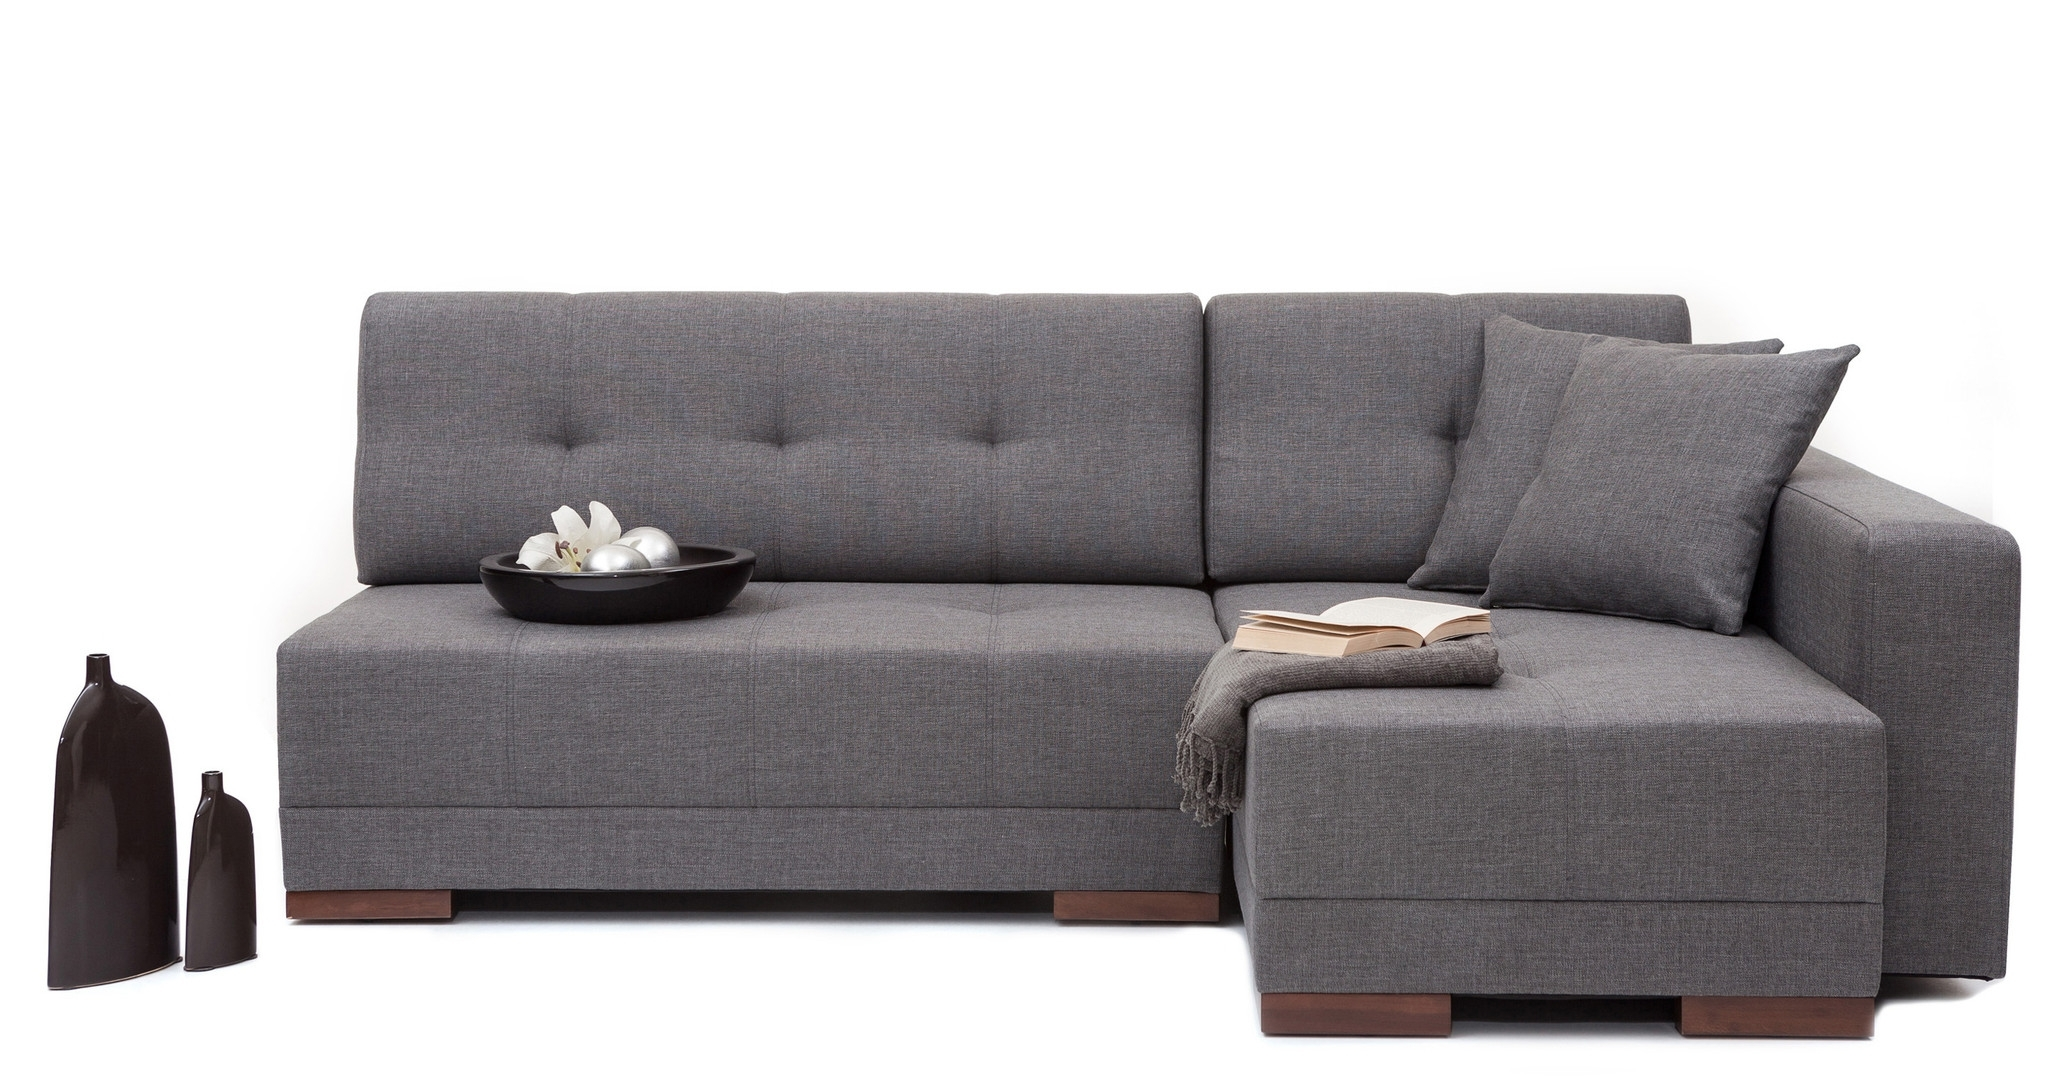 Jennifer Convertibles Sectional Sofas Intended For Widely Used Sofas : Jennifer Convertibles Sofa Modular Sectional Sofa' Leather (View 4 of 20)